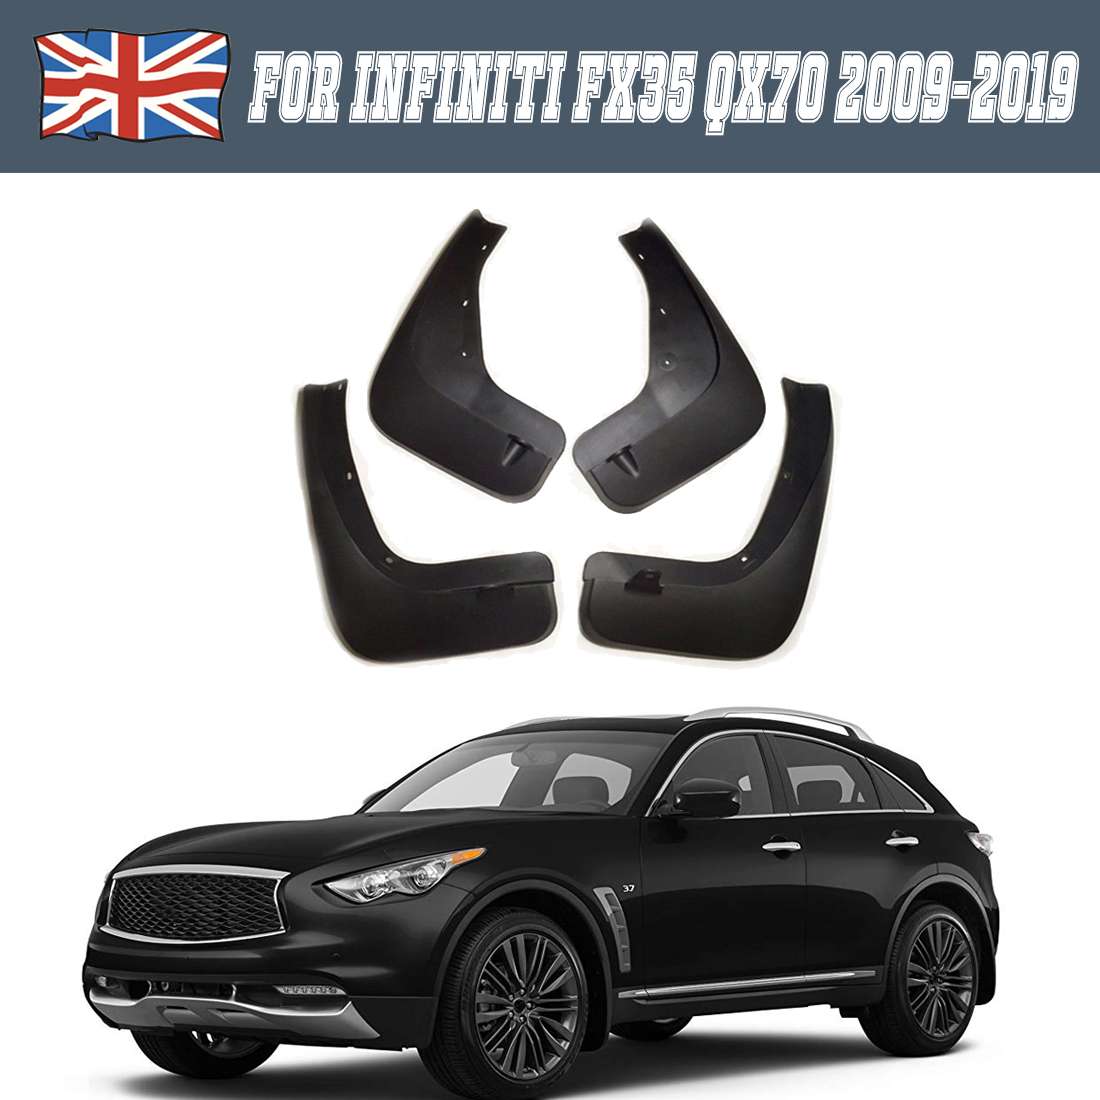 4x Car Mud Flap Splash Guard Fender Mudguard Mudflap For Infiniti QX70 2009-2019